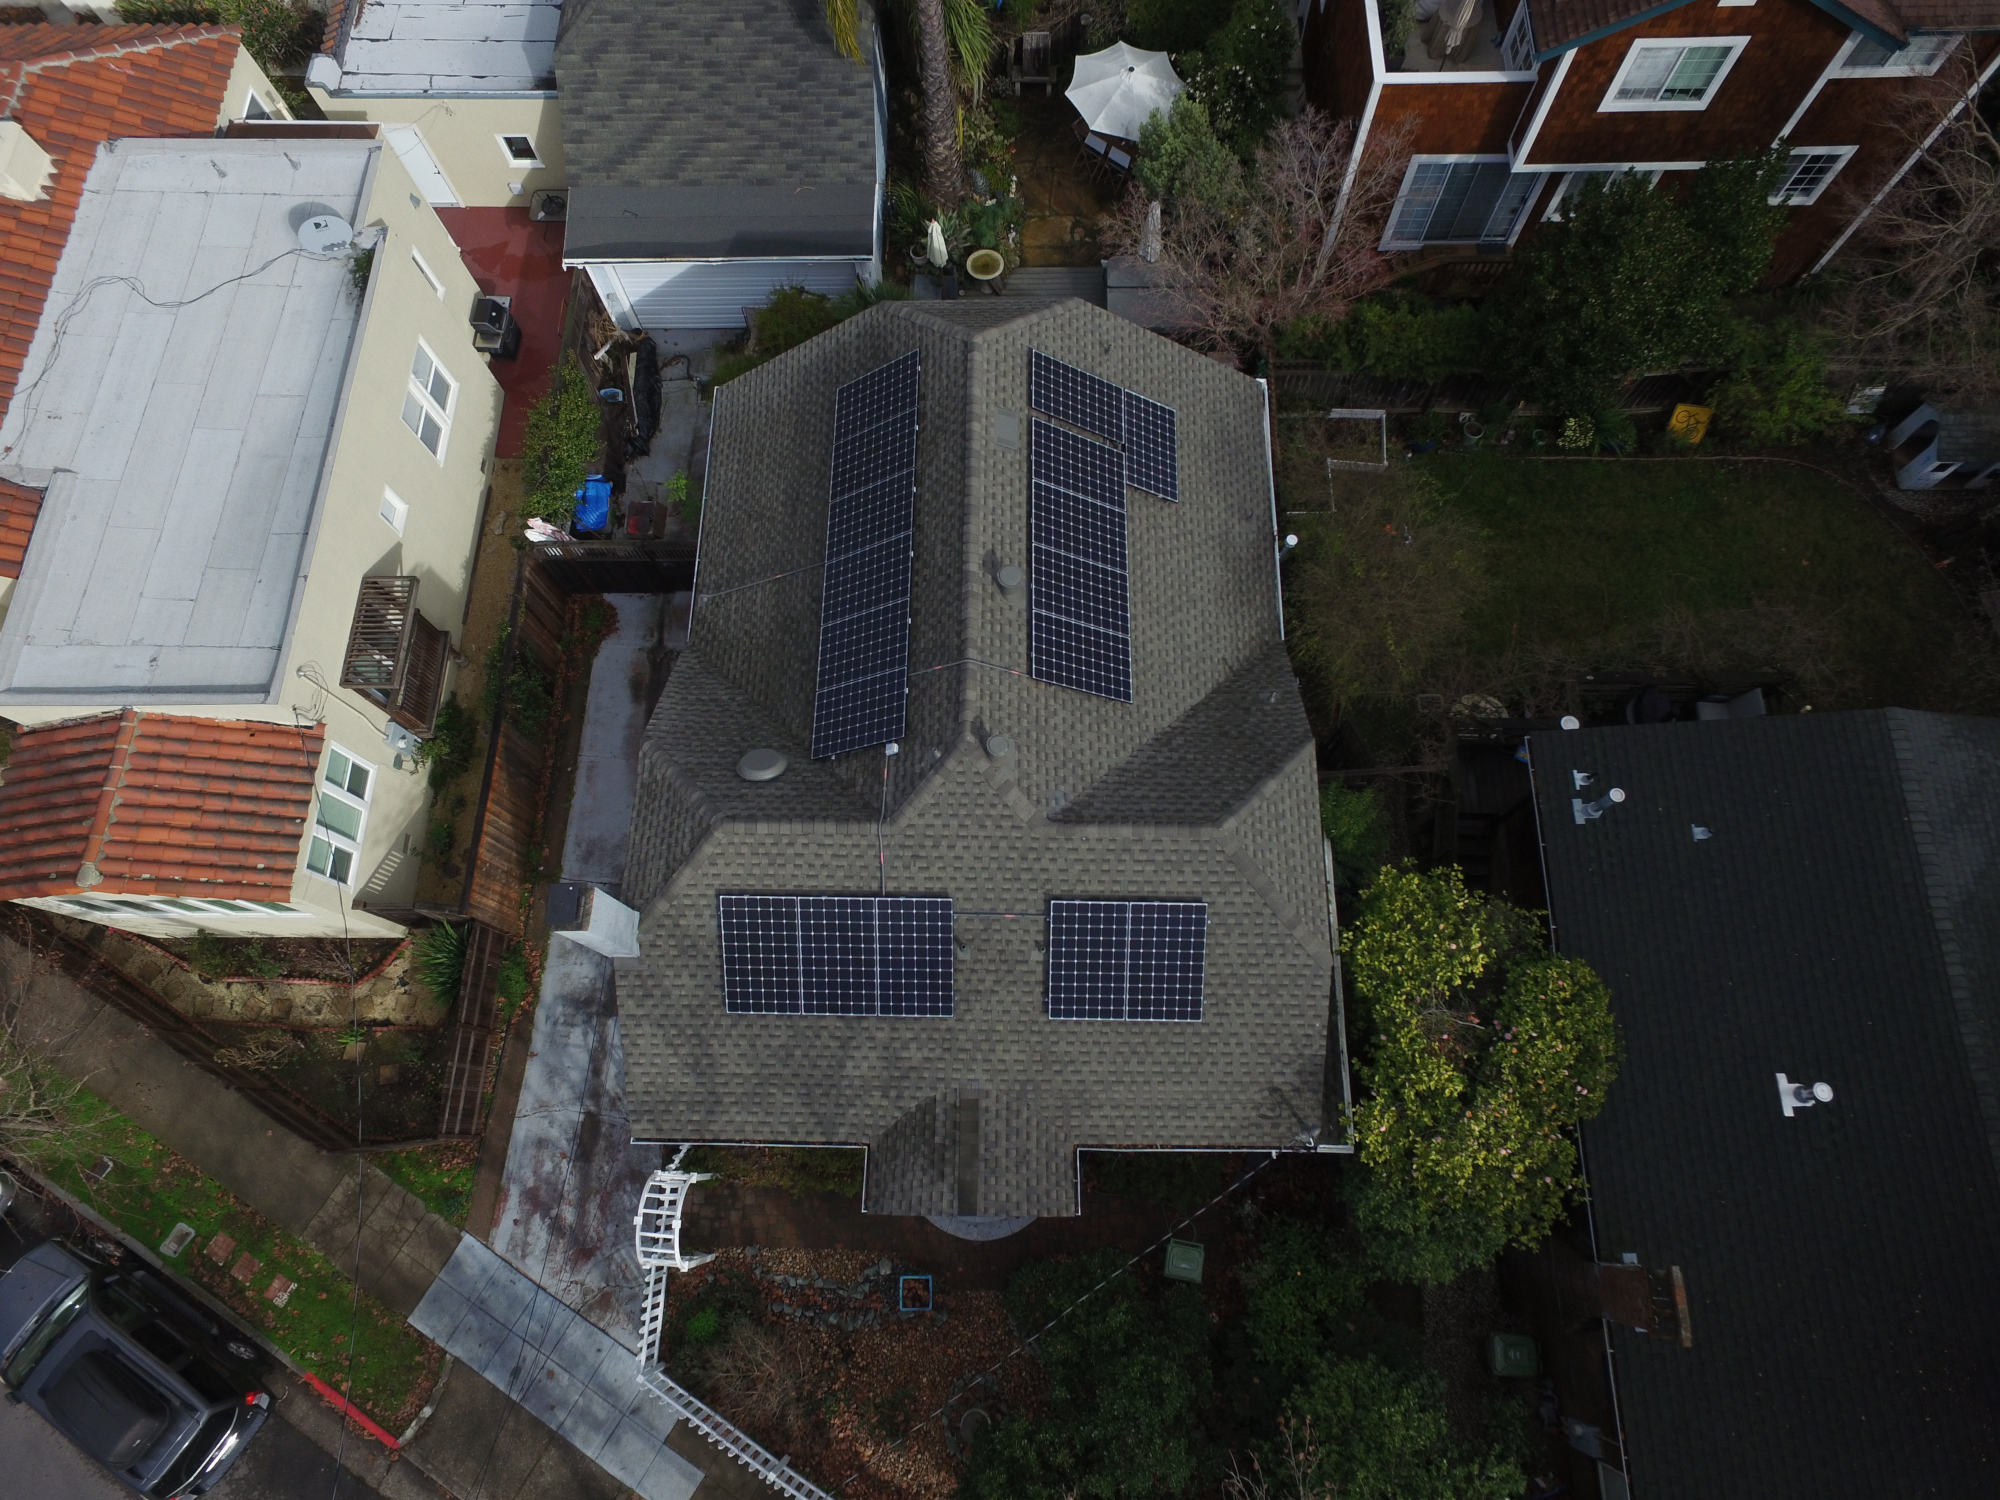 Aerial view of rooftop solar on a home in San Rafael, California